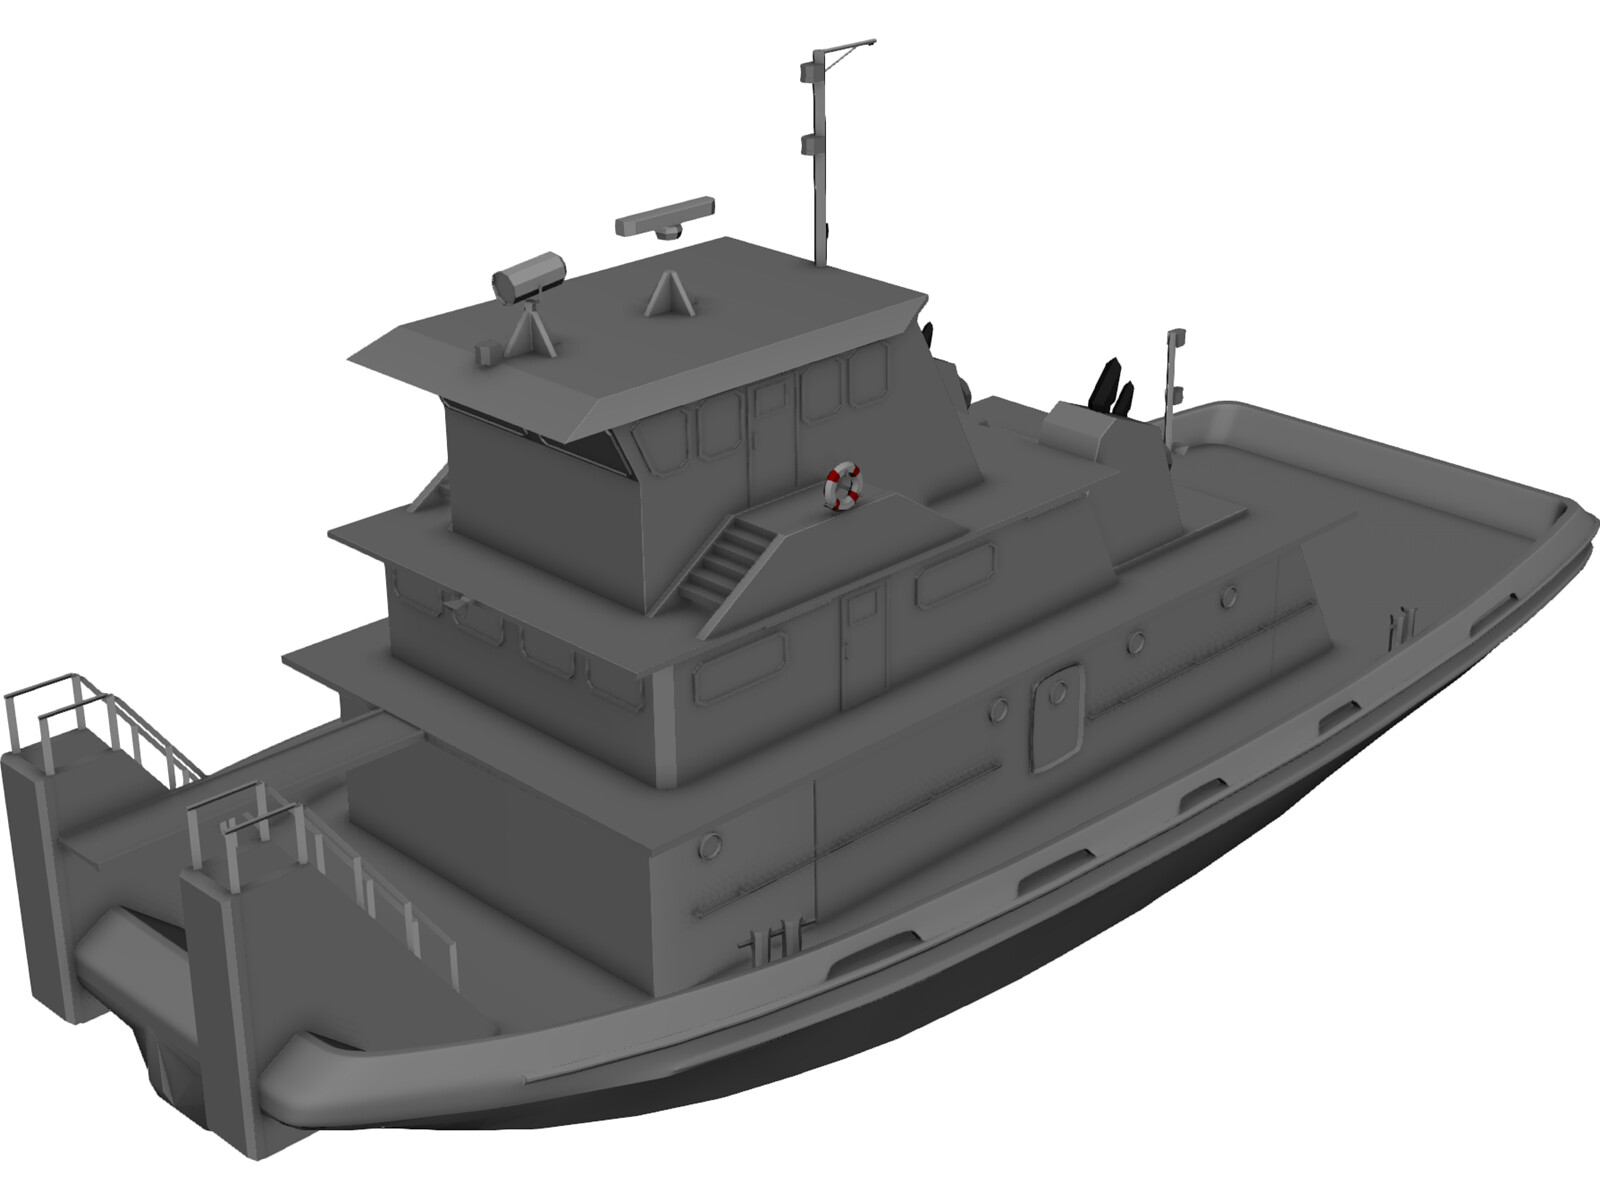 Tug-Push Boat 3D Model - 3D CAD Browser